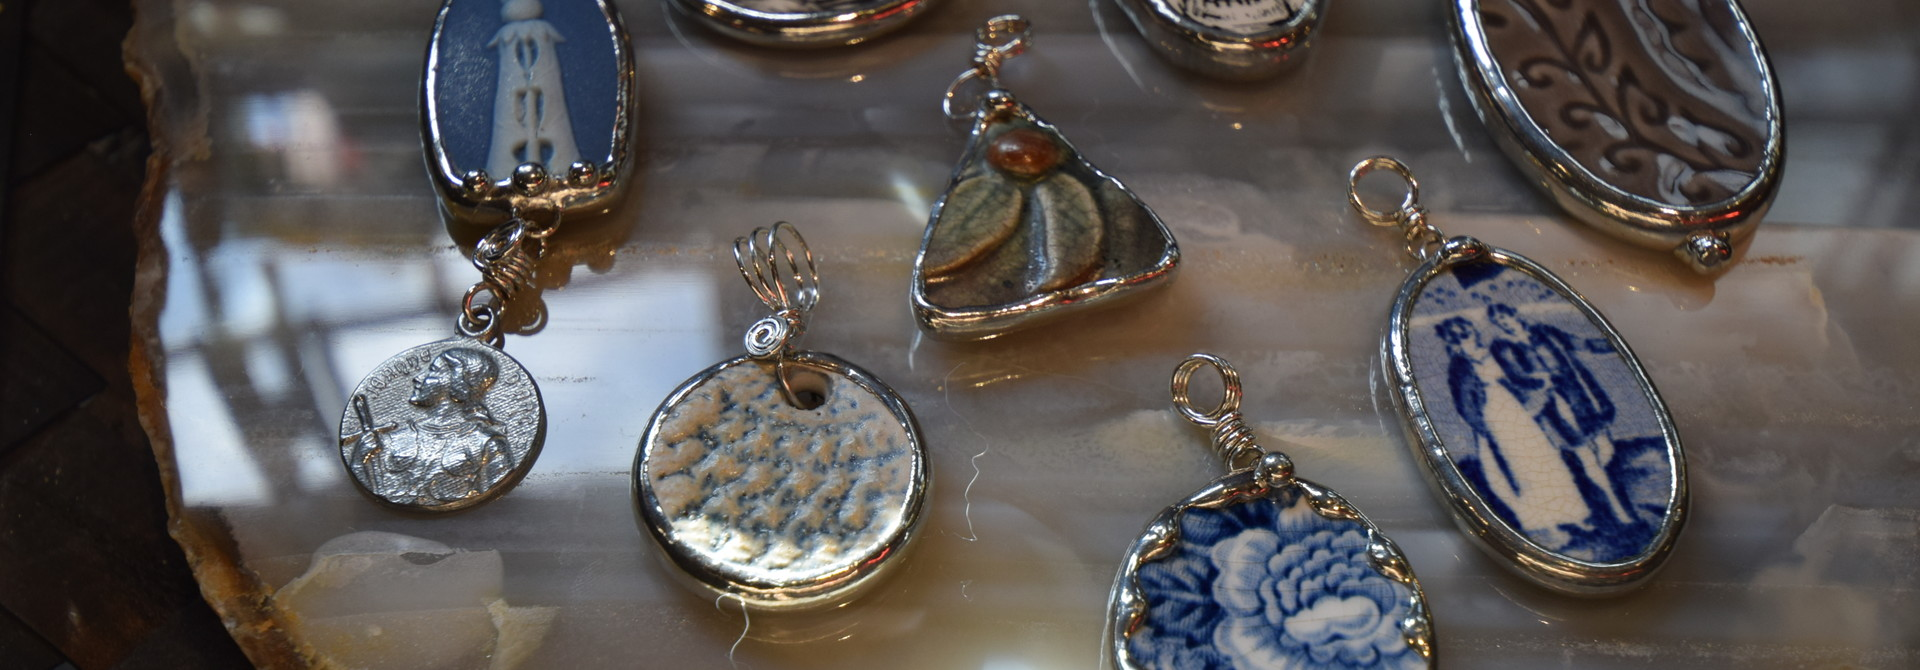 Pins and Pendants